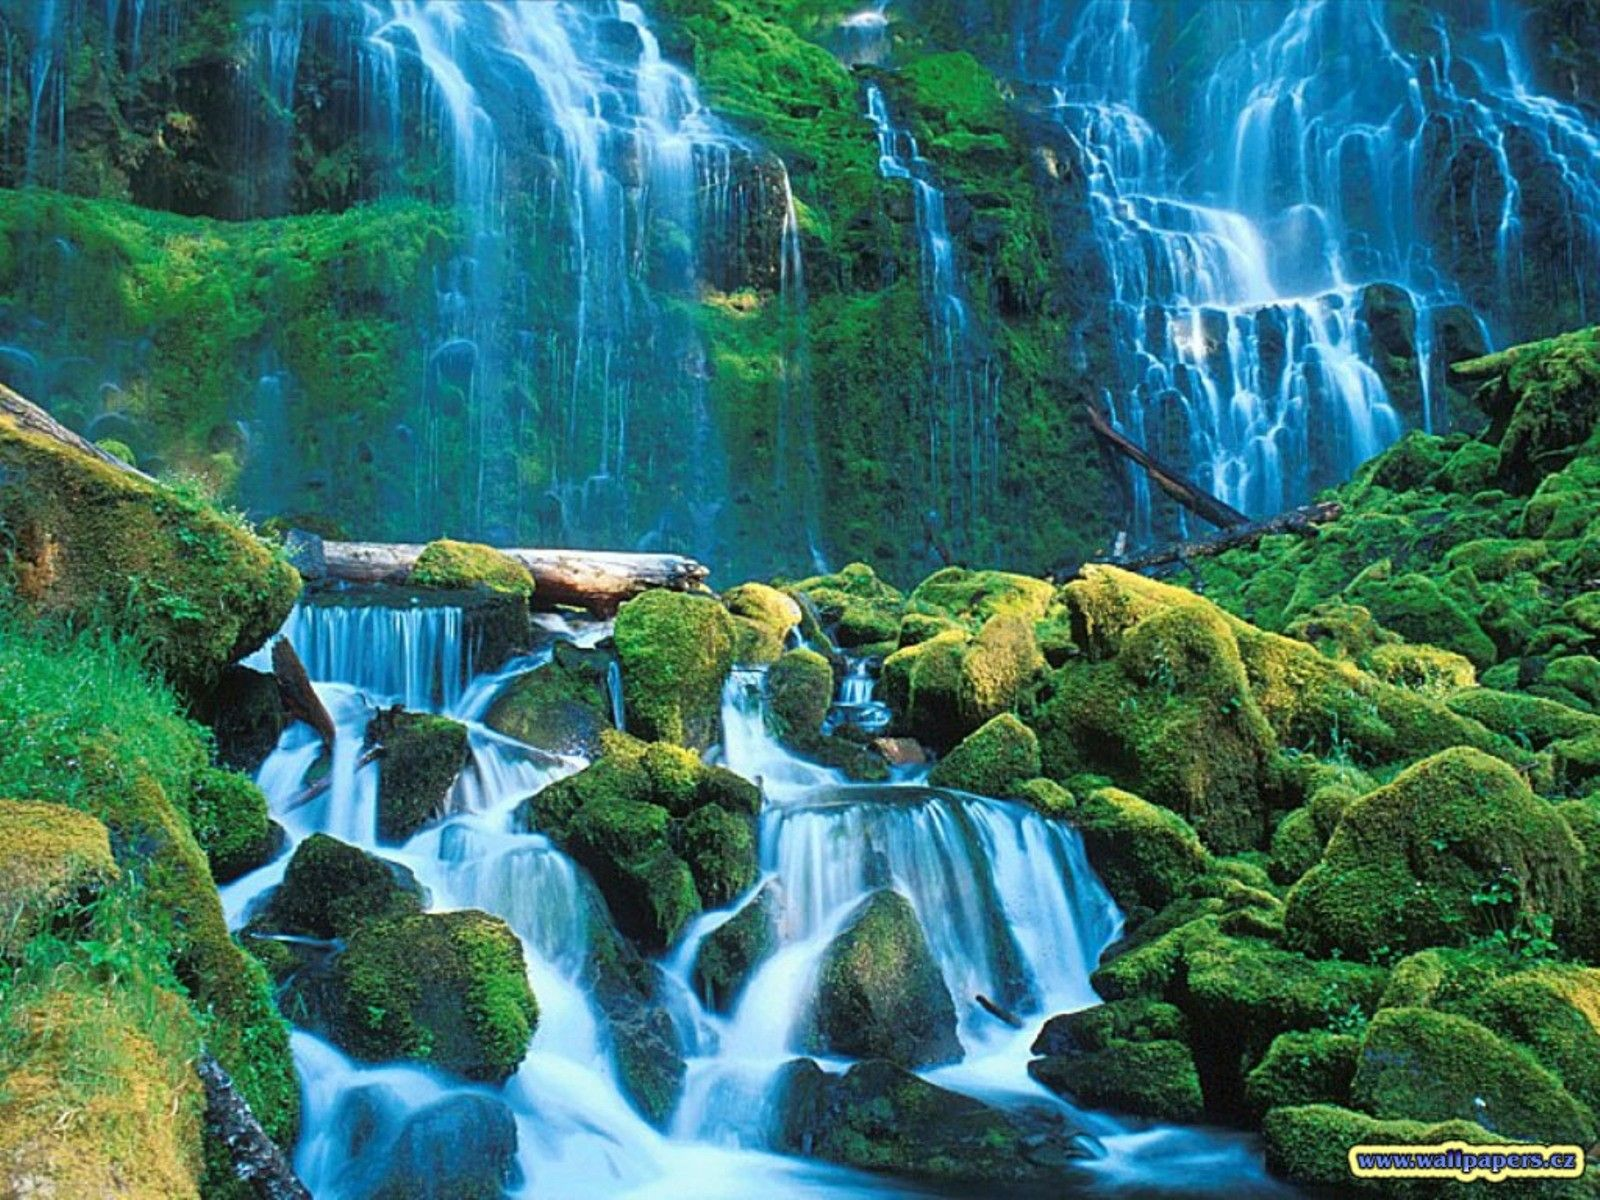 Hd Live Wallpaper For Pc Waterfall Waterfall Wallpaper Scenery